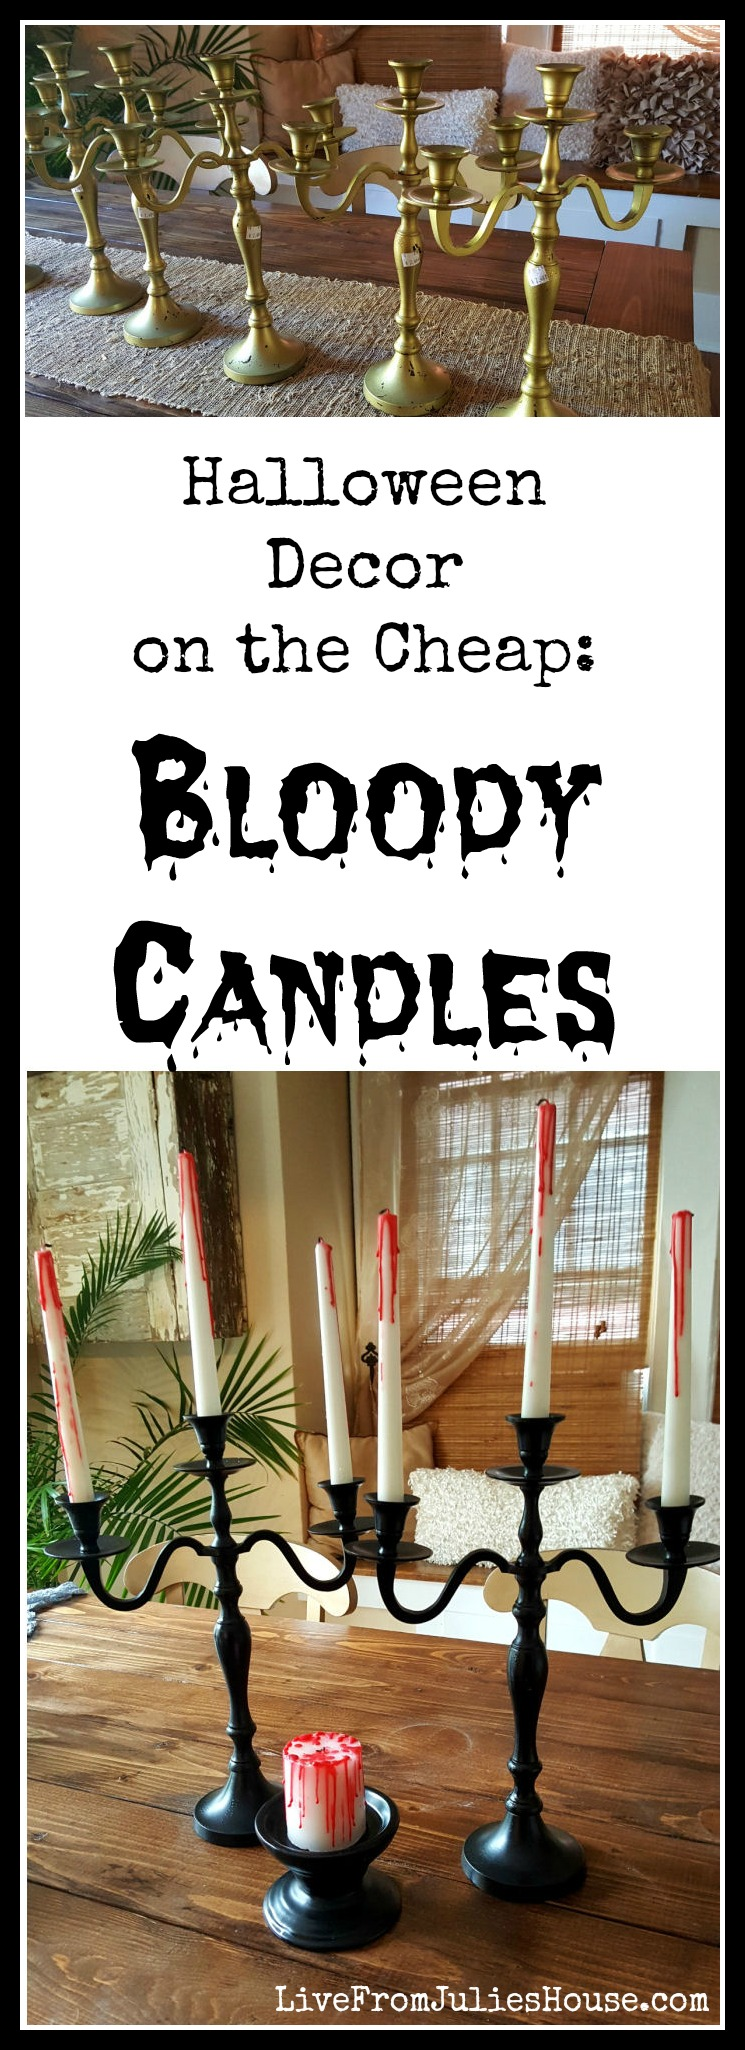 halloween decor on the cheap bloody candles want a halloween decor project that gives - Cheap Halloween Decor